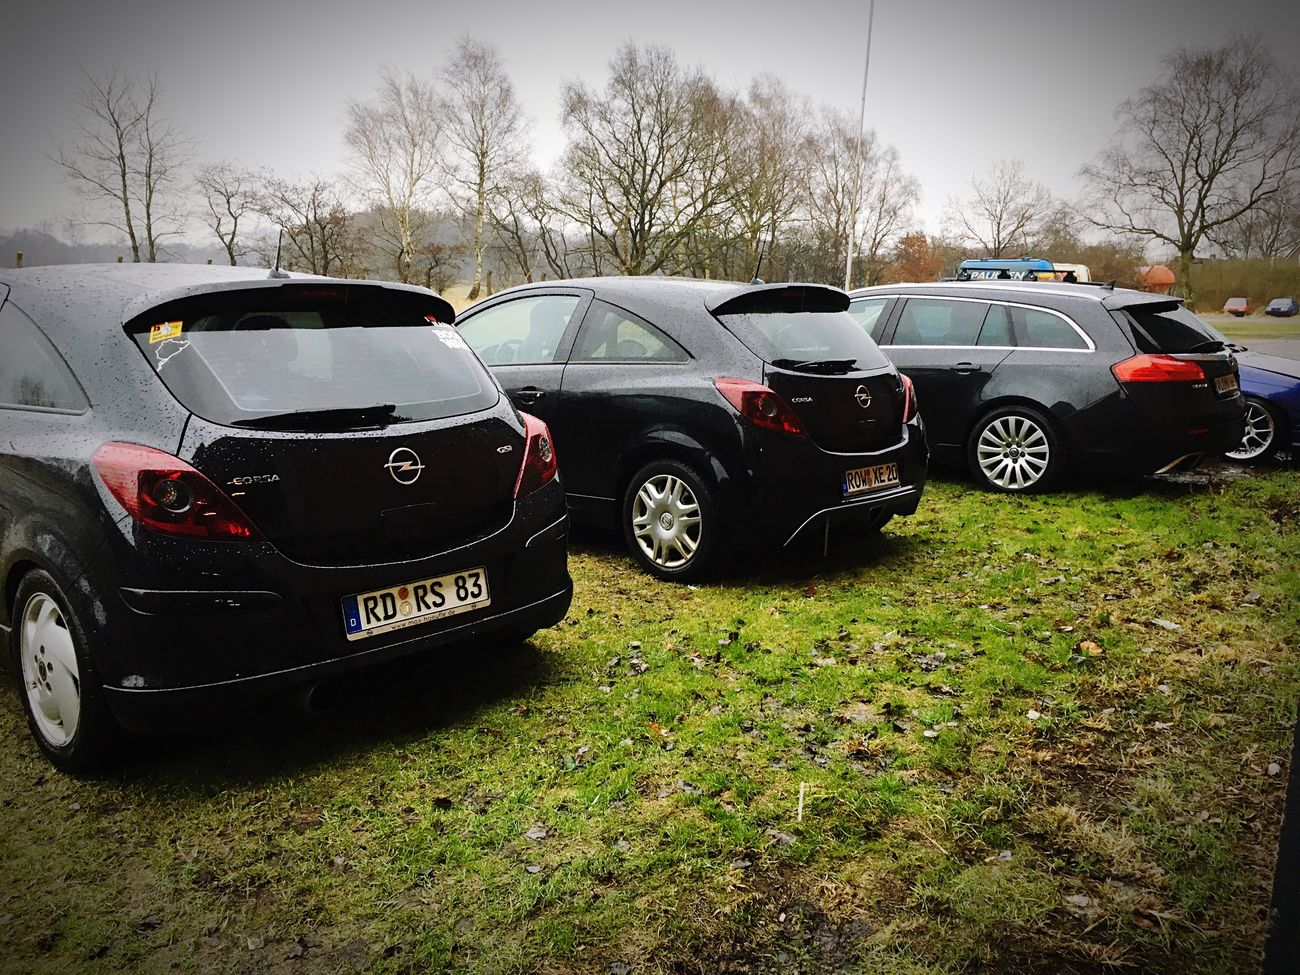 Car Tree Transportation Mode Of Transport Stationary No People Day Outdoors Corsa D GSI Corsa Insignia Opel OPC